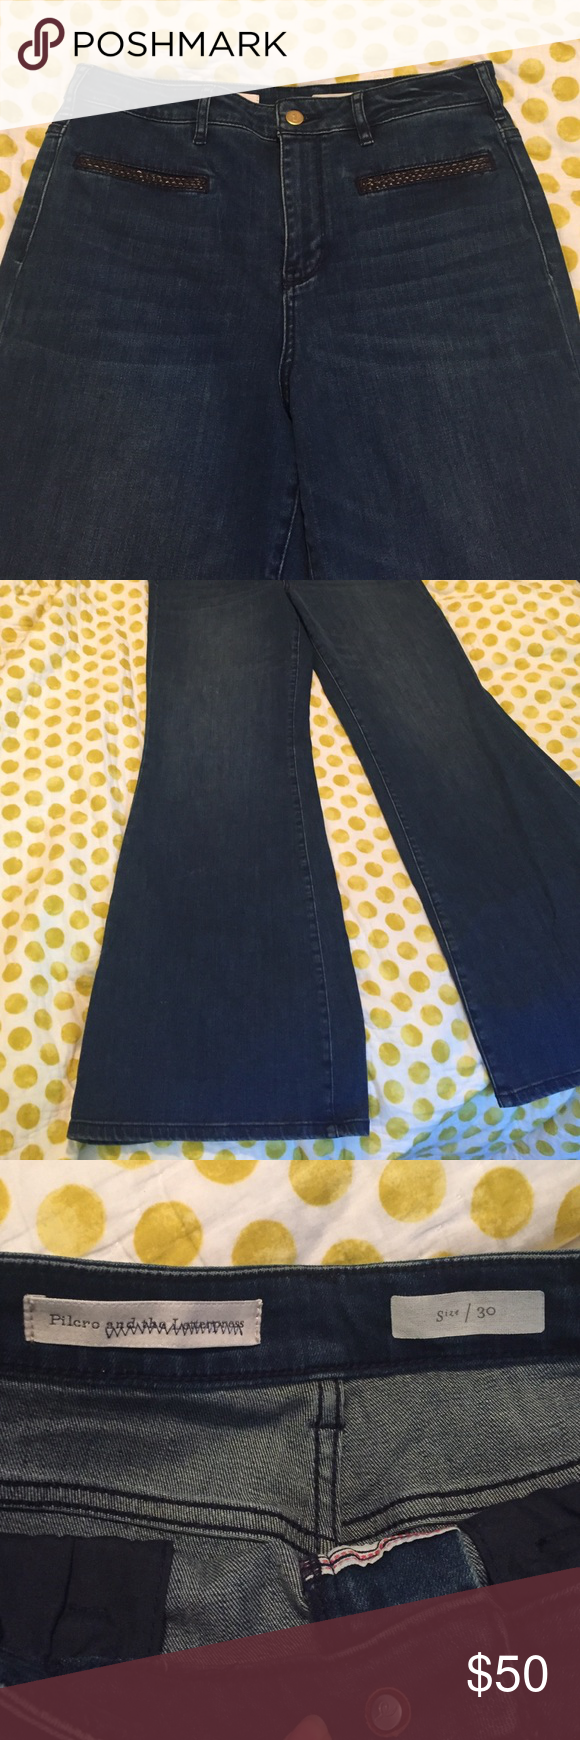 Anthropologie Pilcro Flare Jeans- Size30 Anthropologie Pilcro and the Letterpress Jeans! So, so cute- great fit with flare leg. Worn once! Great little braided leather pockets- perfect condition. Size 30-or size 10. Fit true to size. Anthropologie Jeans Flare & Wide Leg